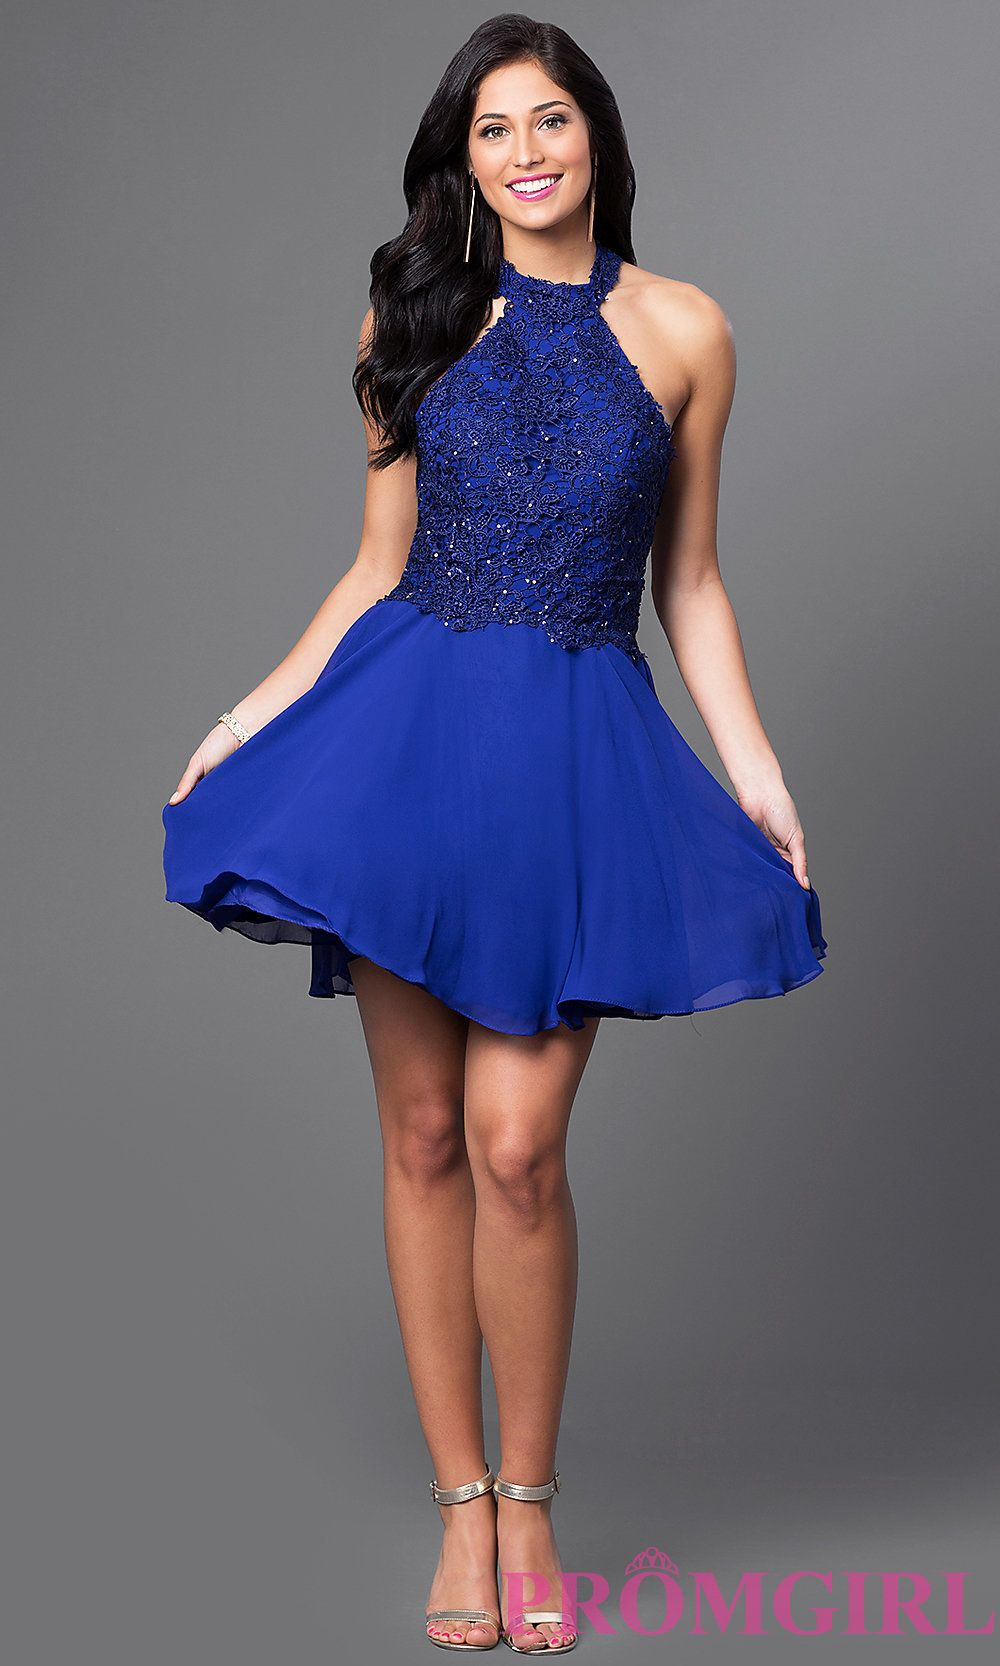 Short halter party dress with sequinedlace bodice lace bodice